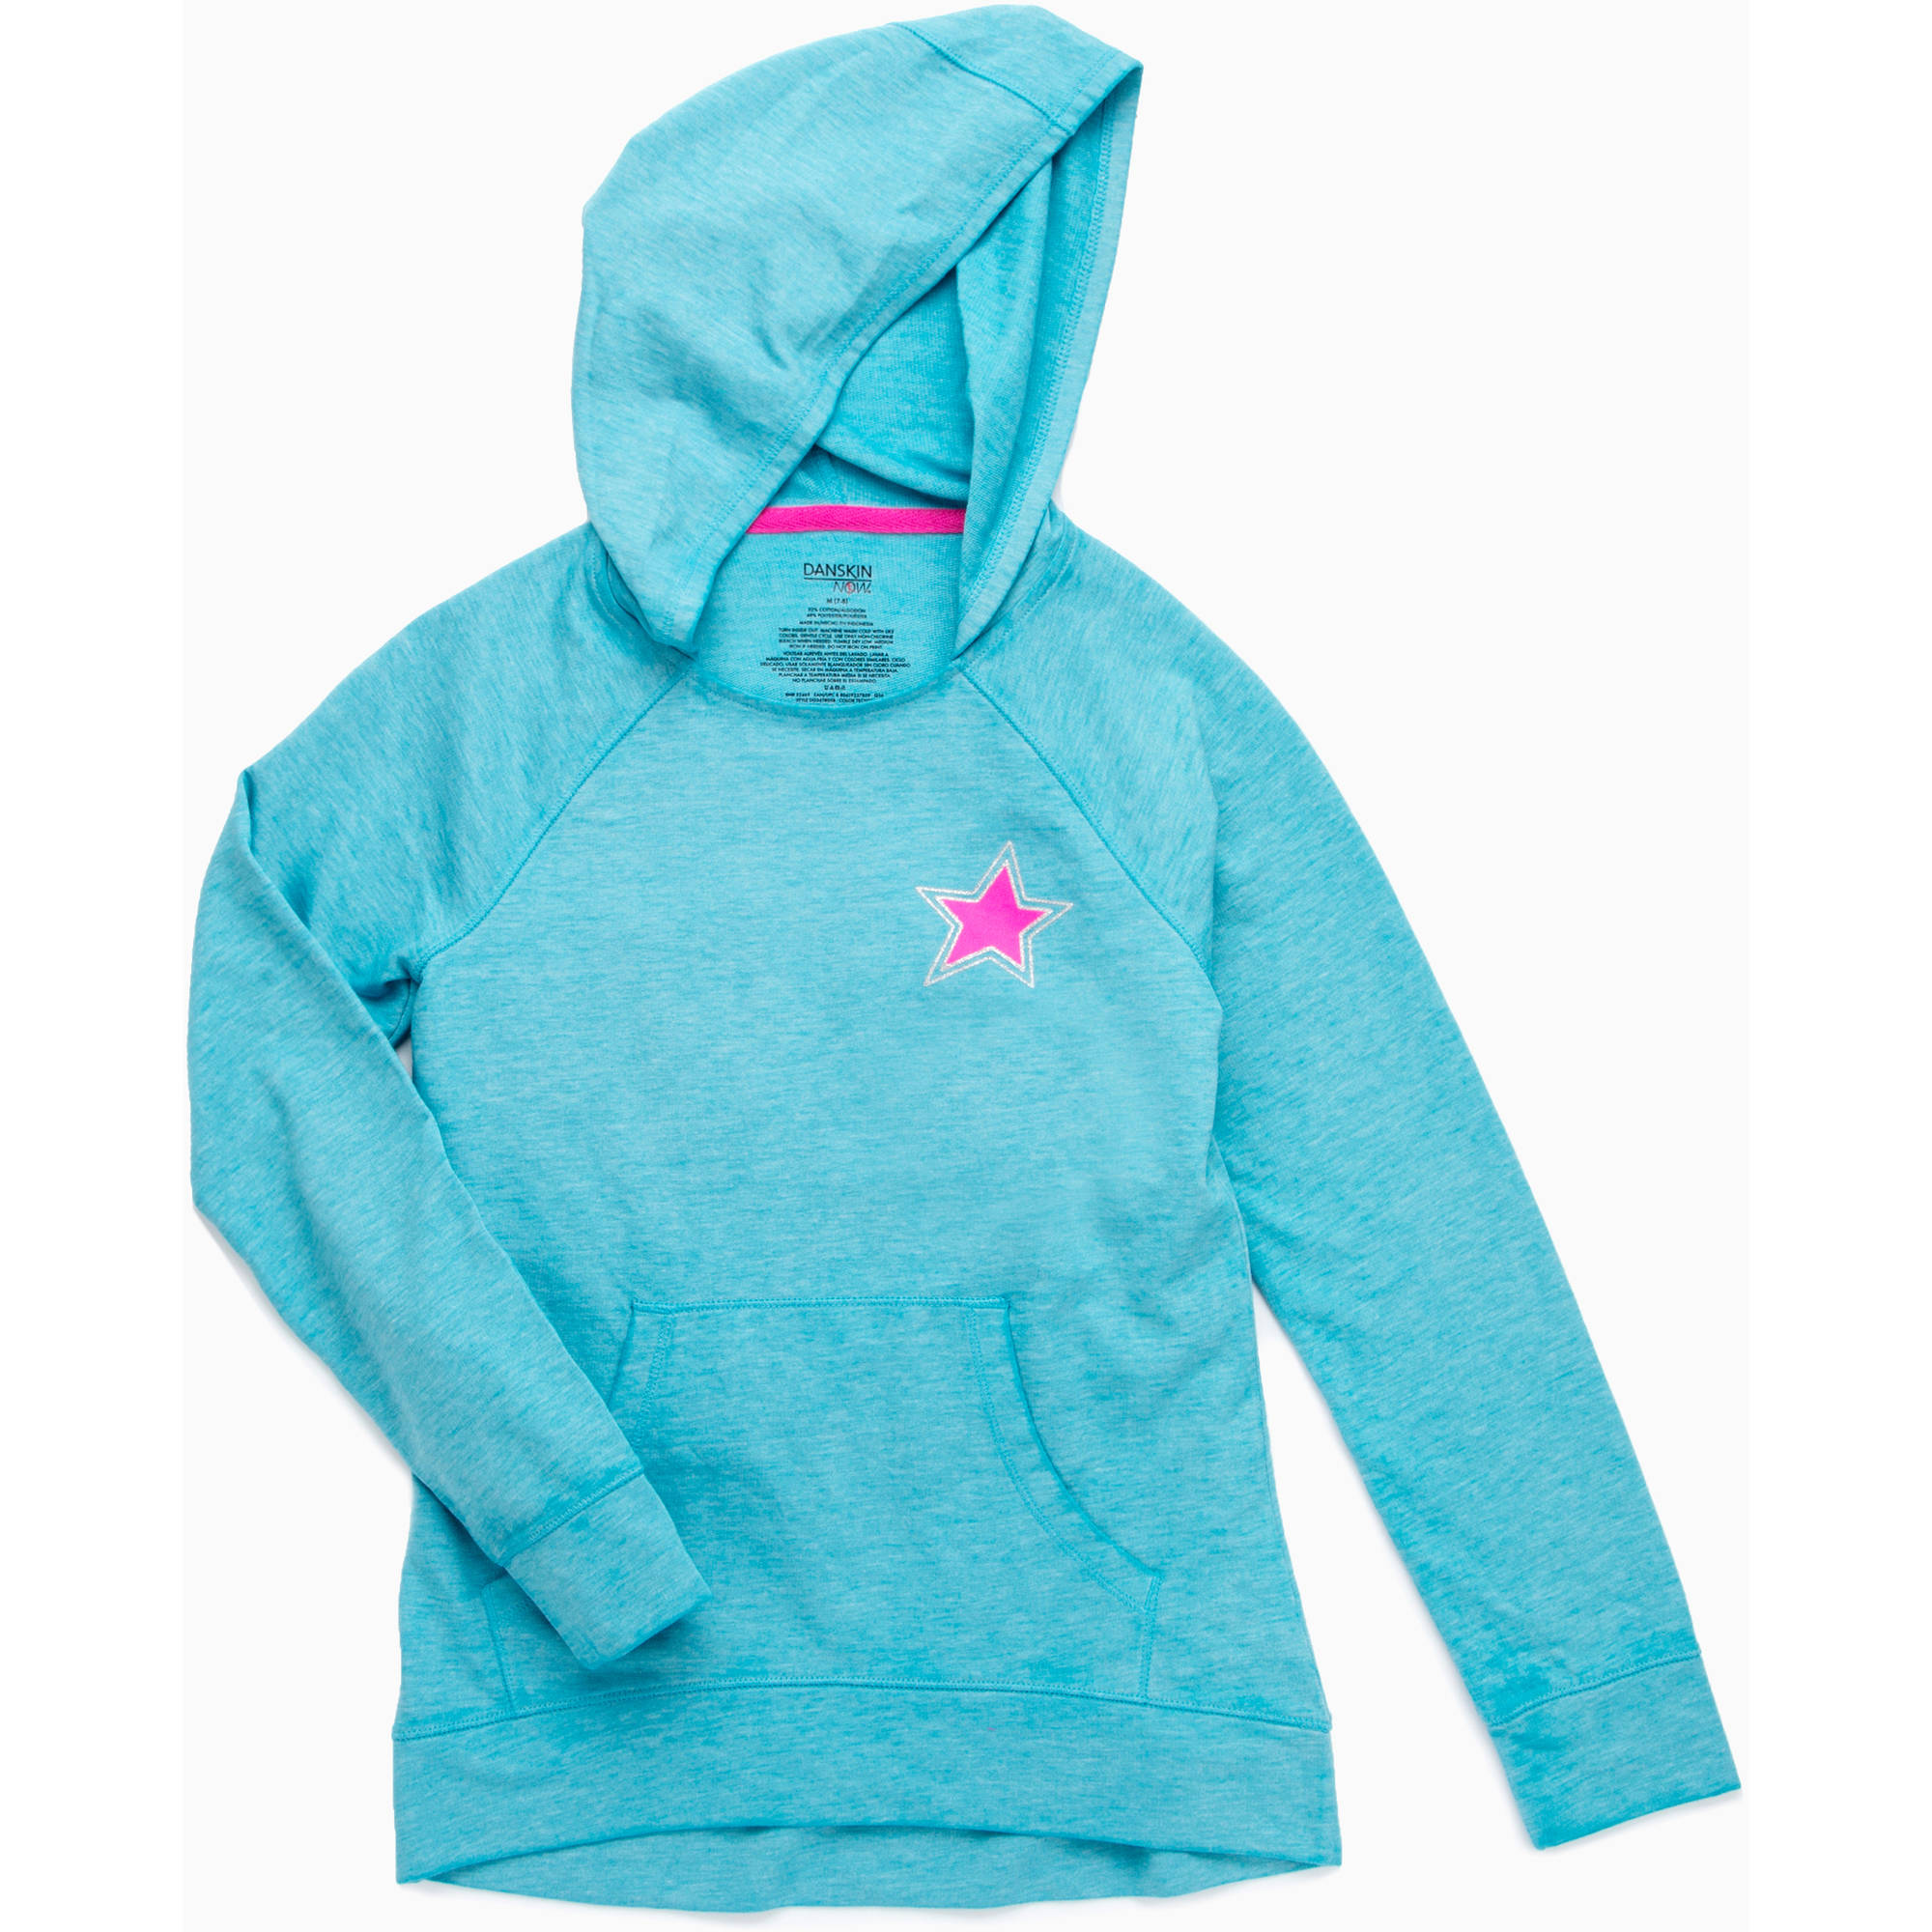 Danskin Now Girls' Burnout Hoodie